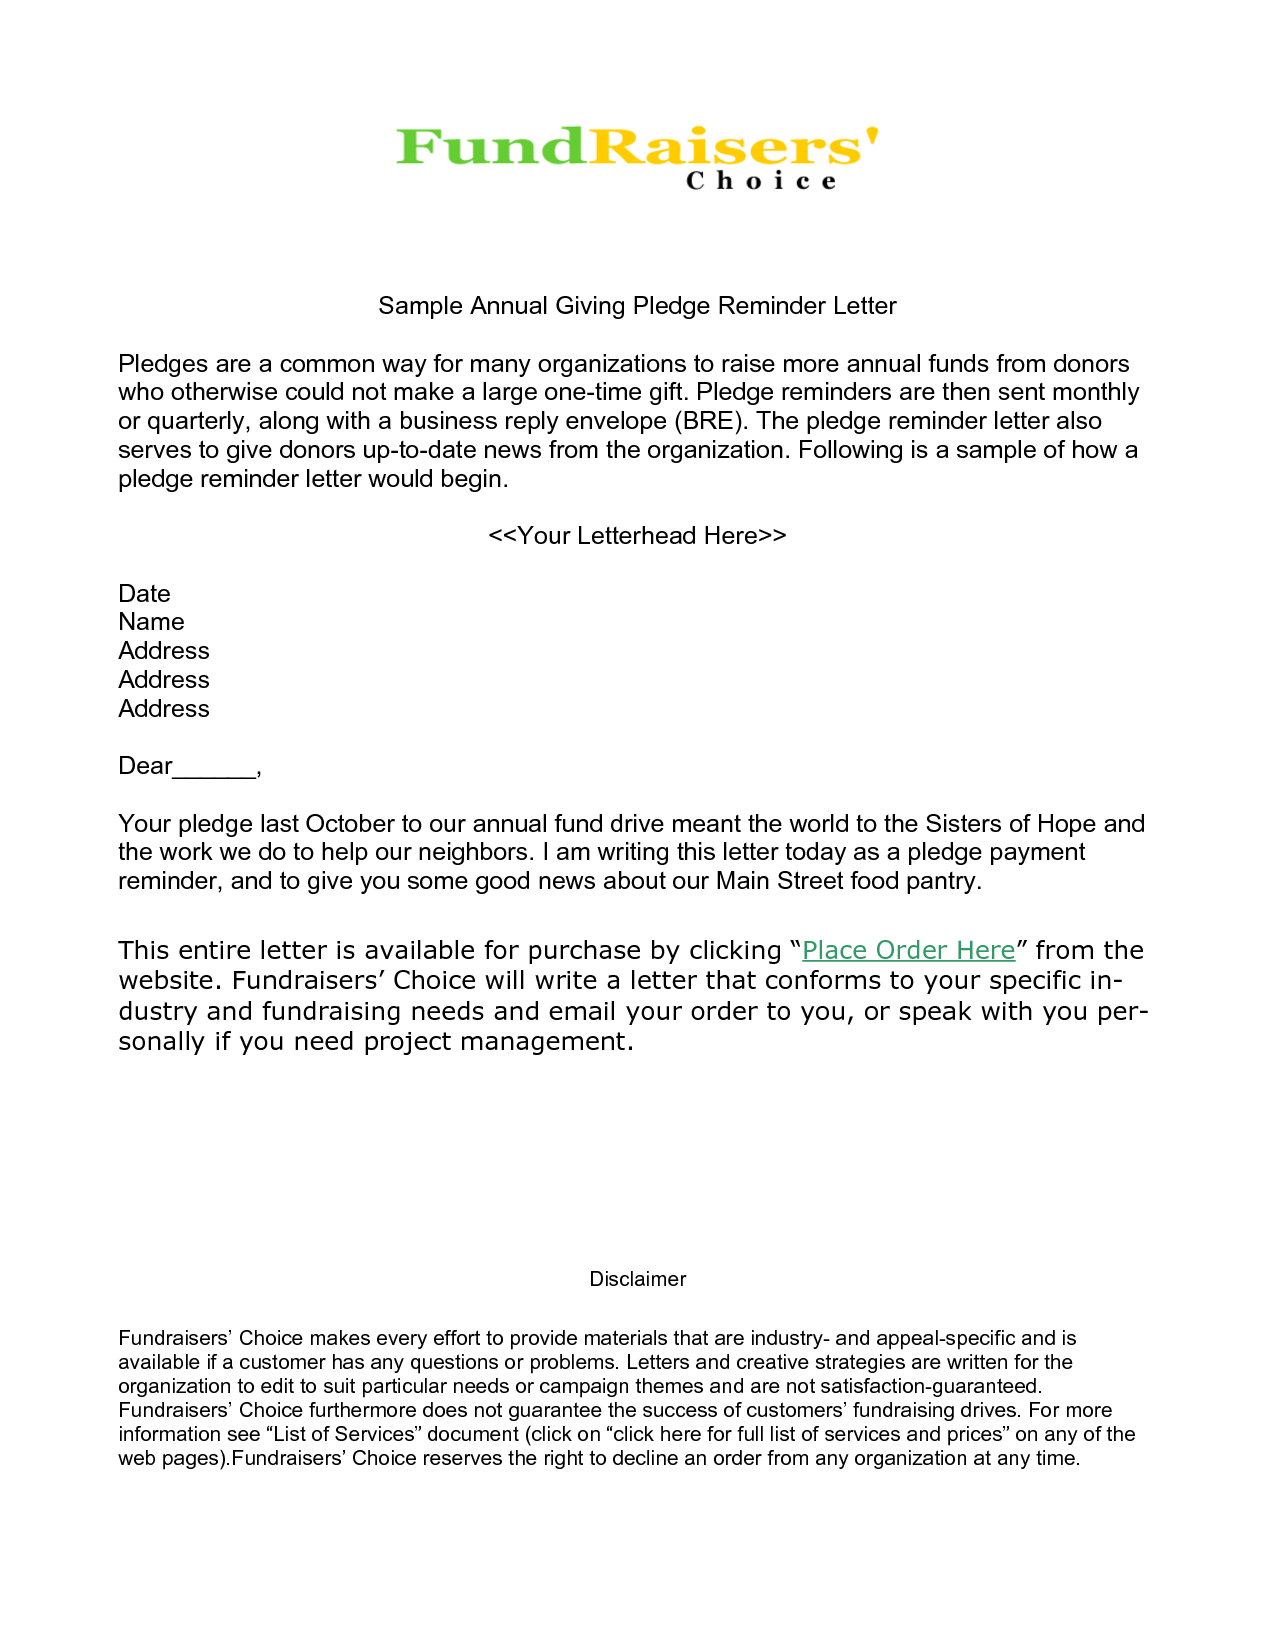 Mammogram Reminder Letter Template - How to Write Reminder Letter Gallery Letter format formal Sample